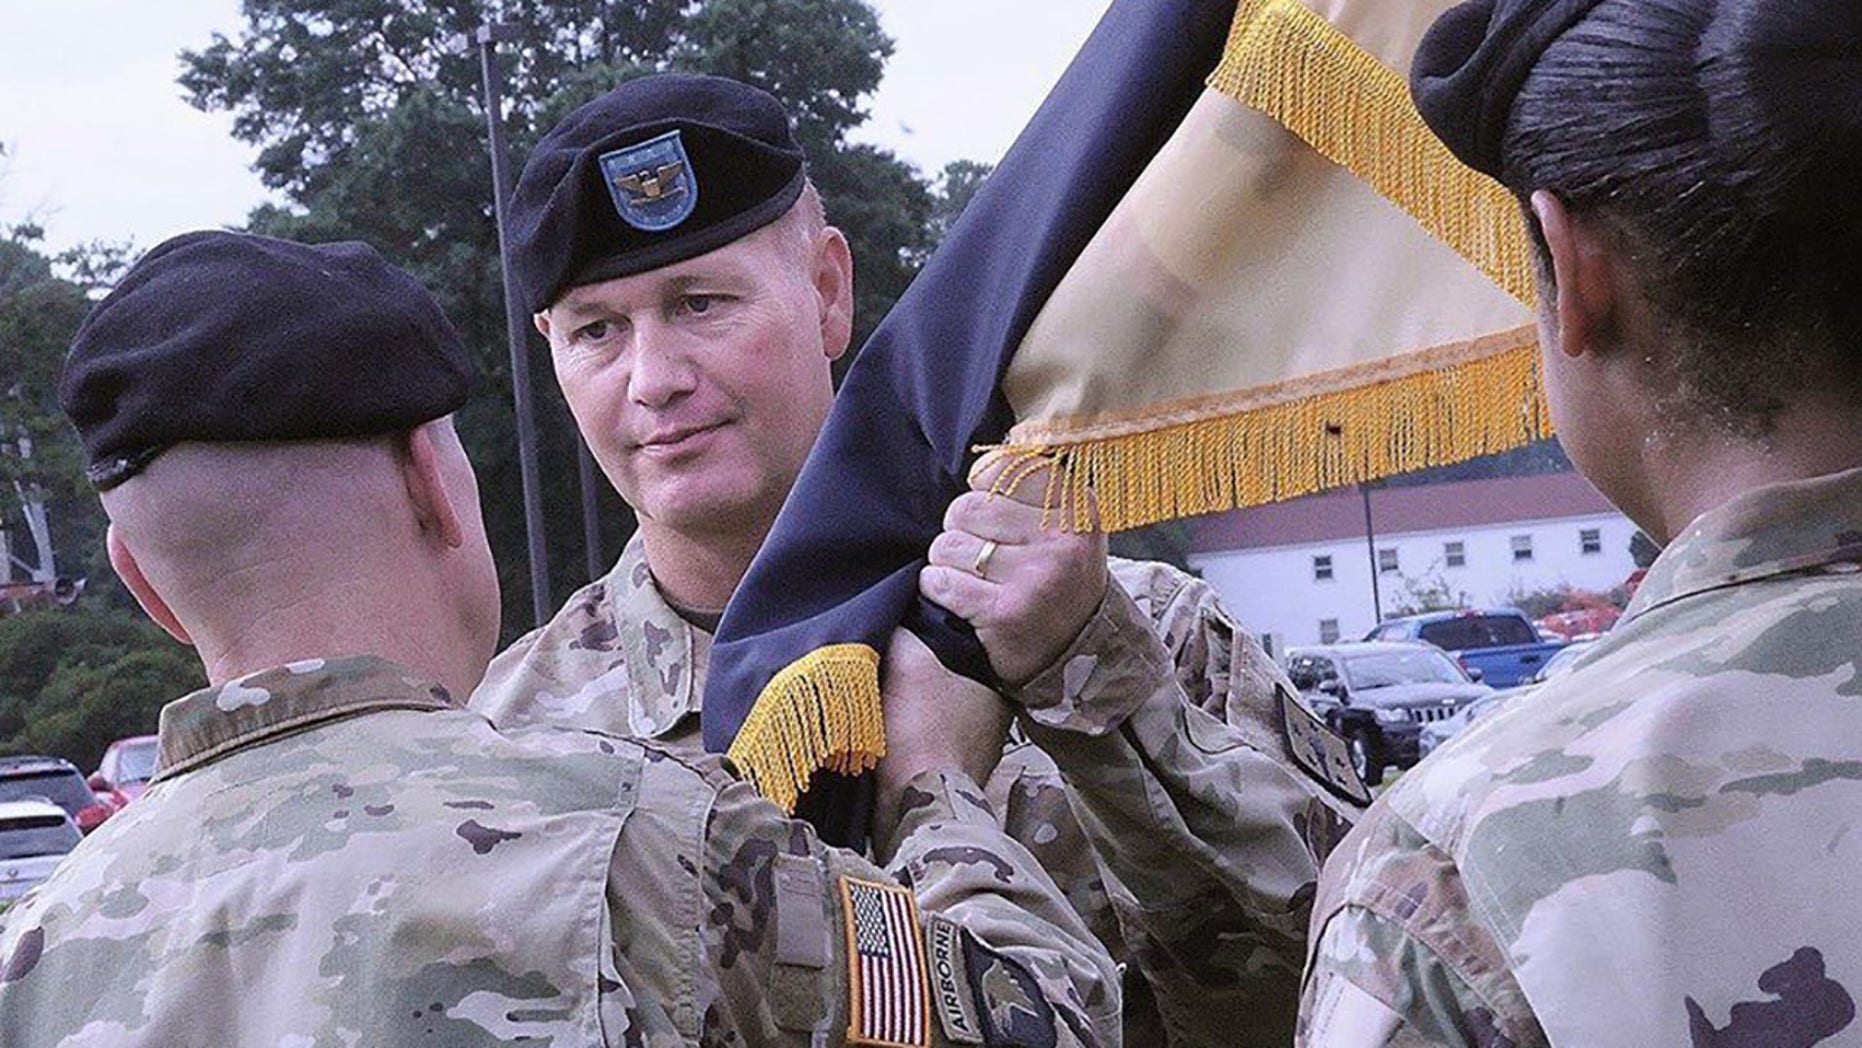 Col. Gregory S. Townsend joined the Army in 1996.